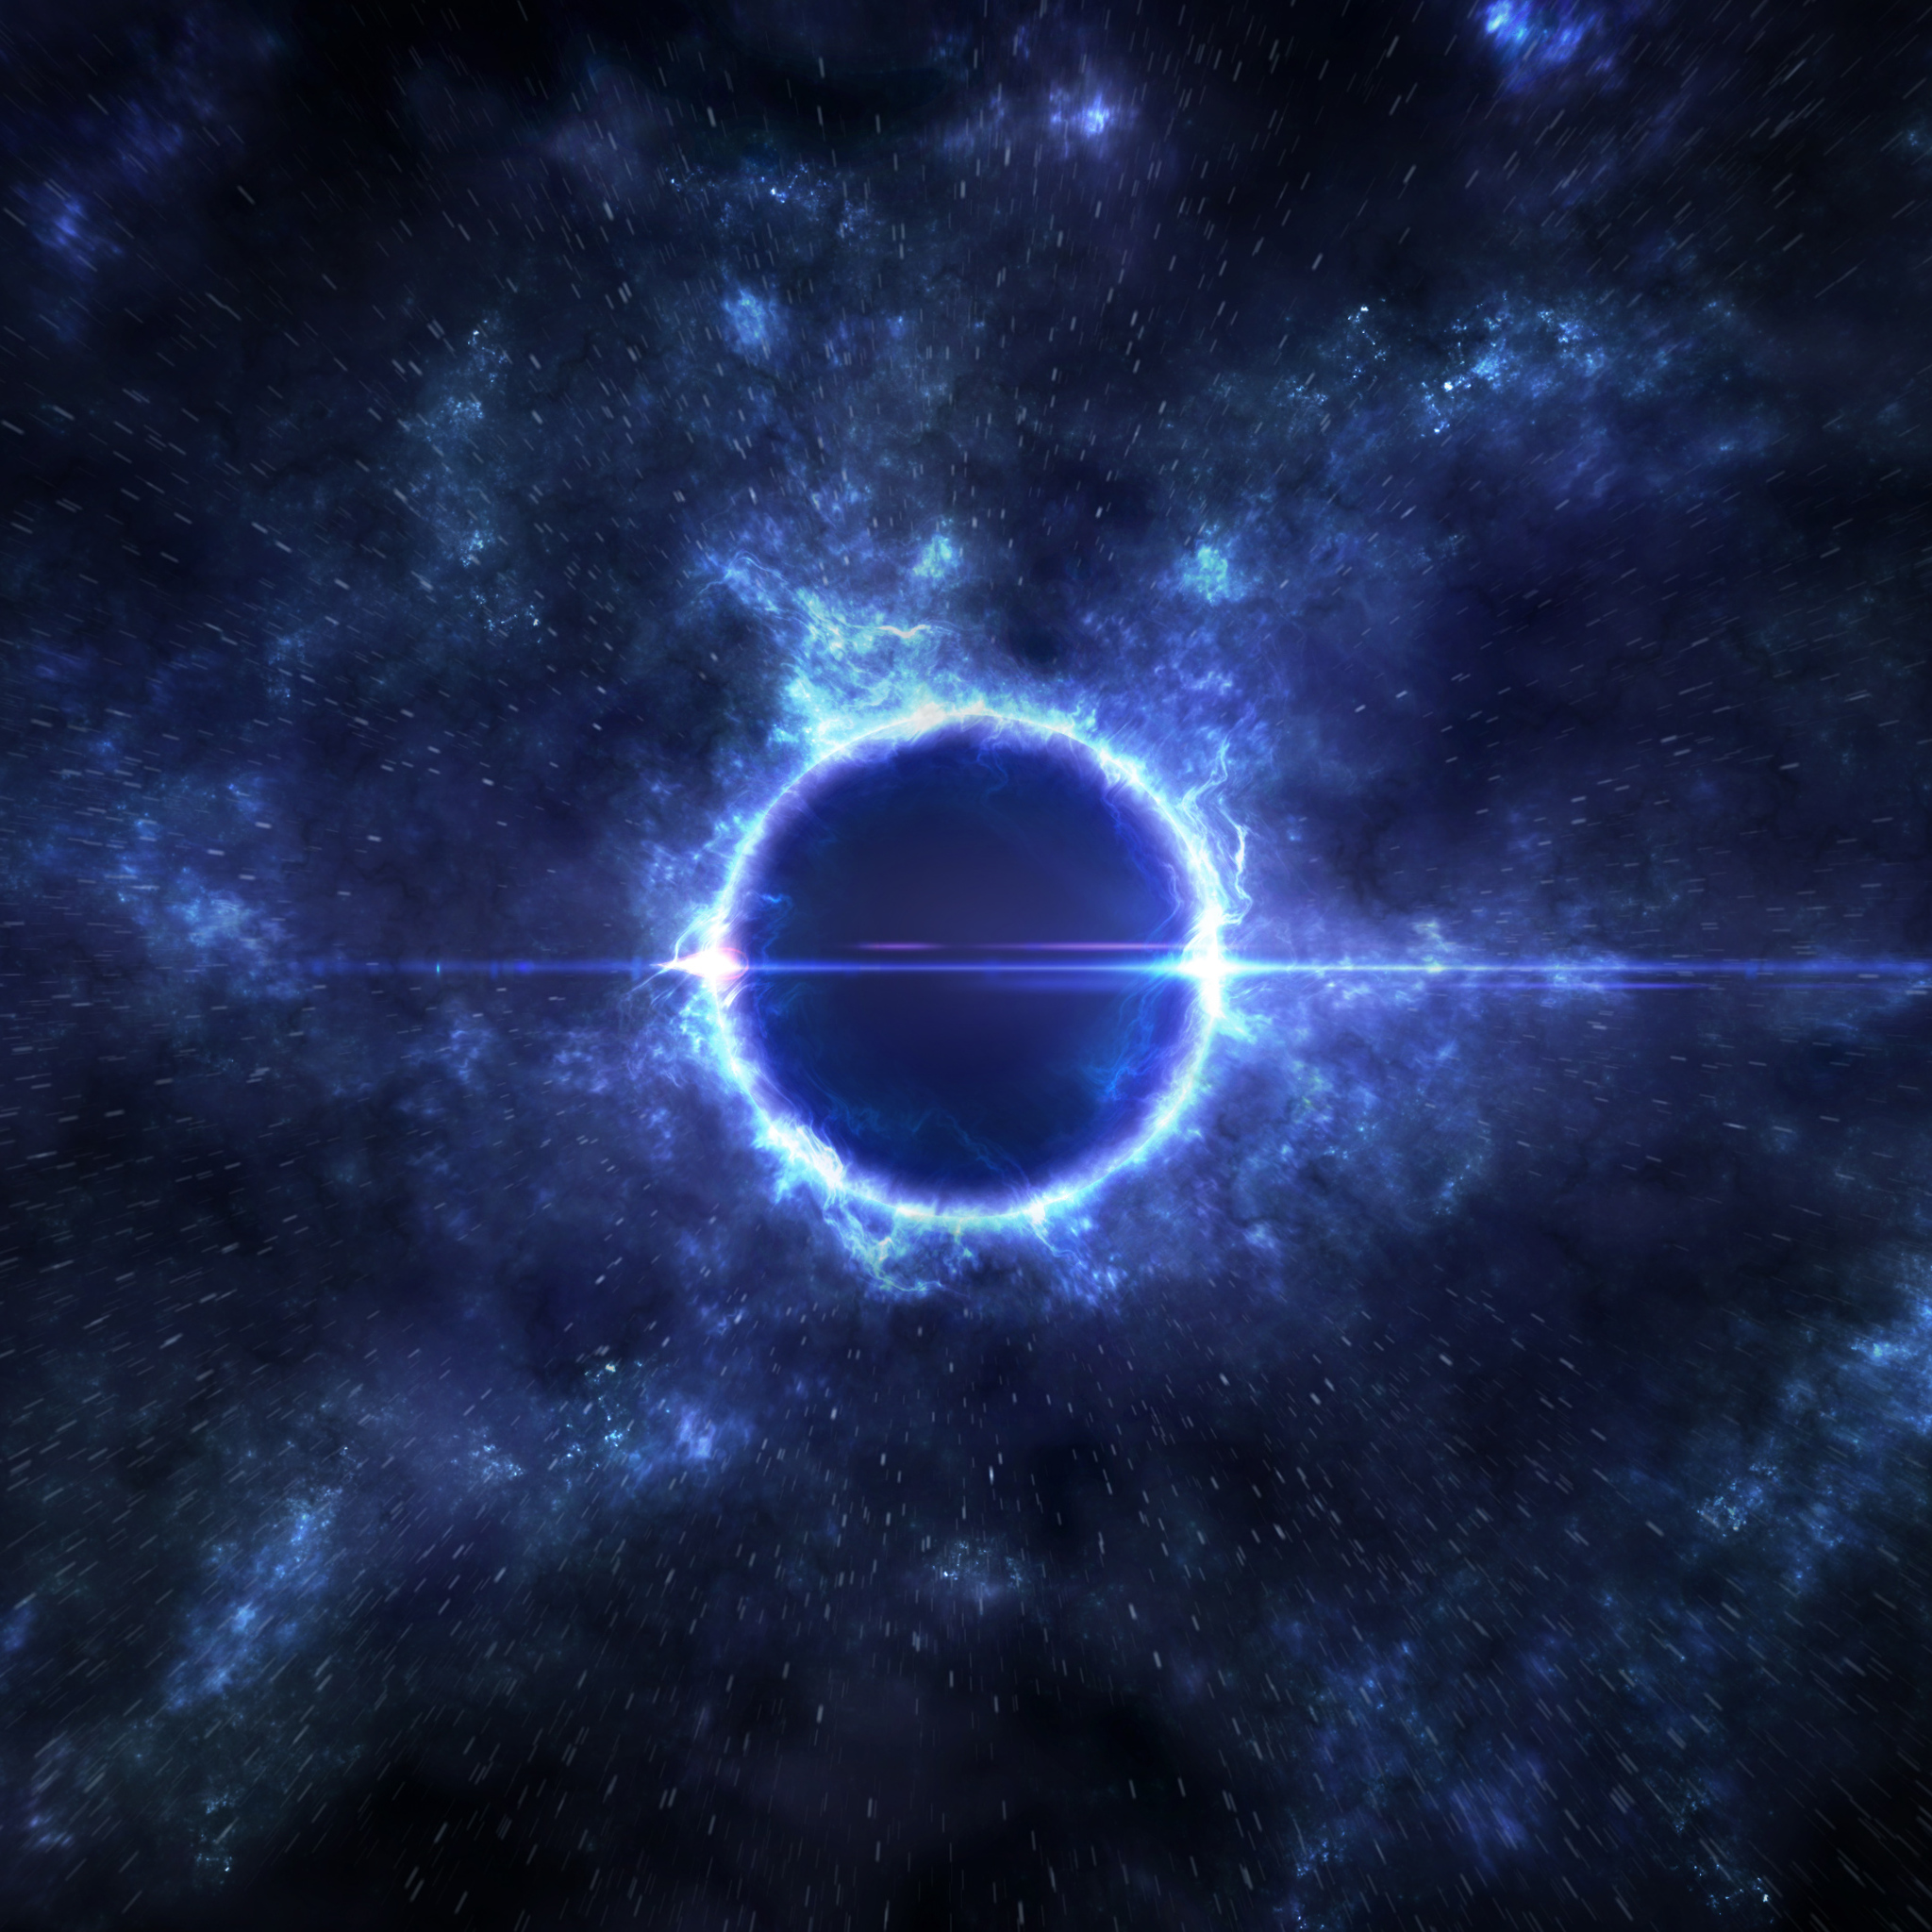 black-hole-gateway-4k-4p.jpg